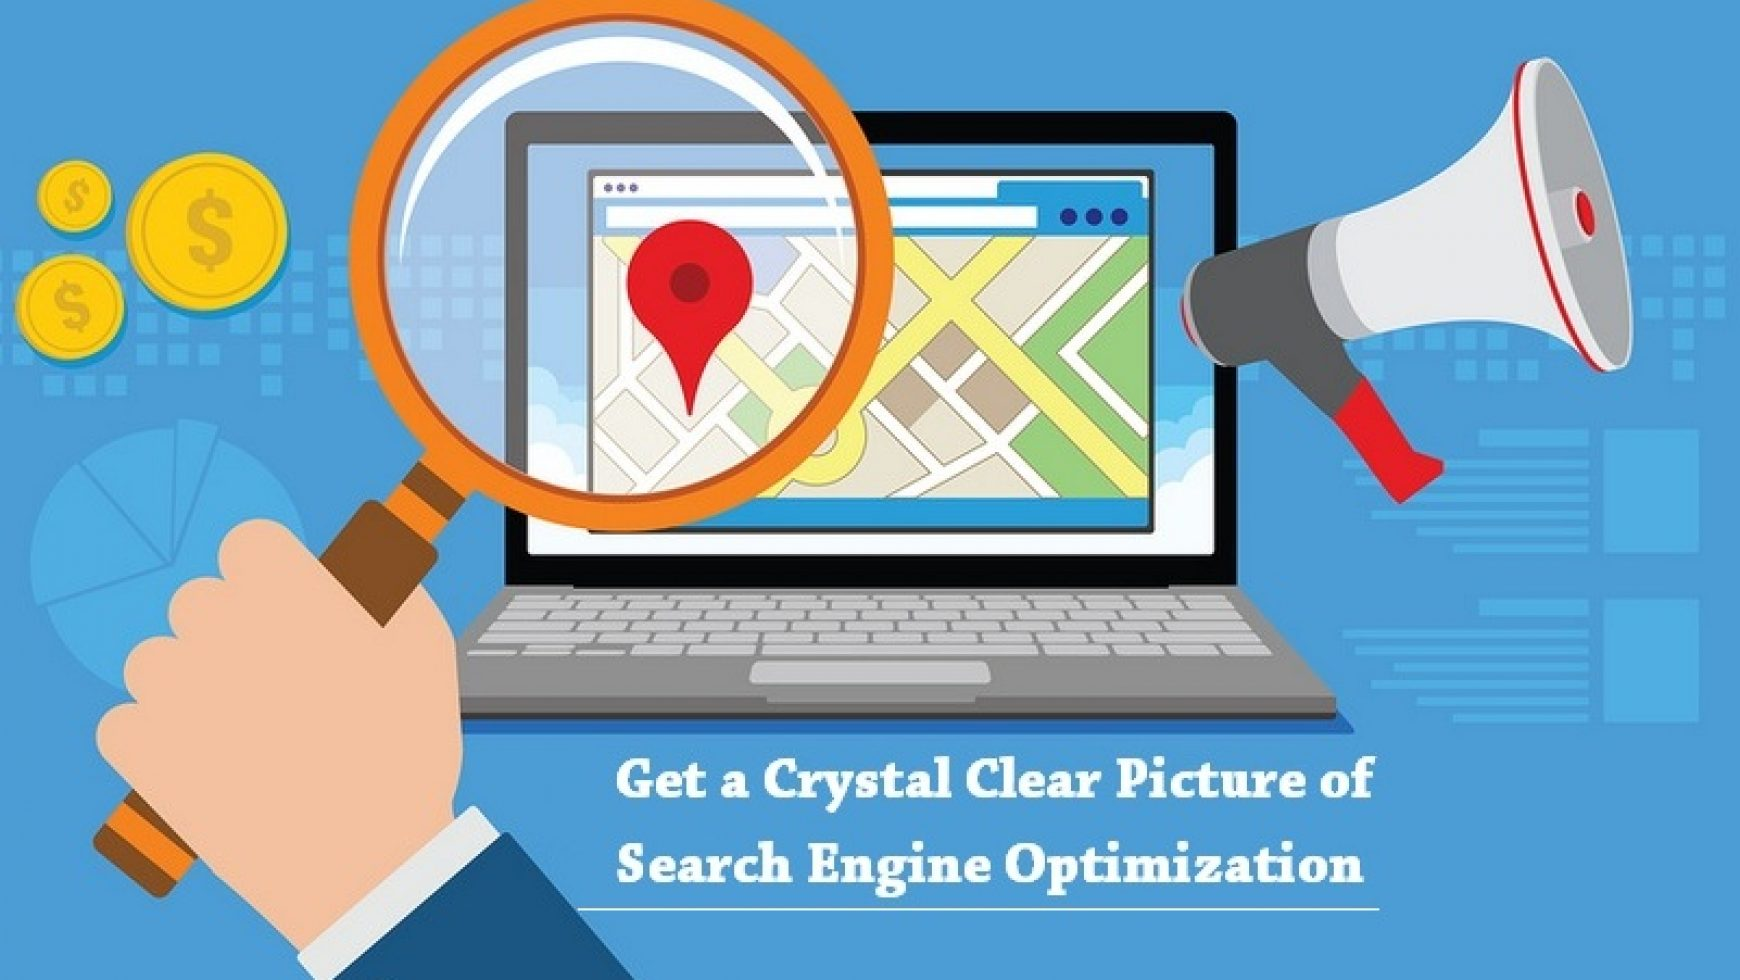 Get a Crystal Clear Picture of Search Engine Optimization